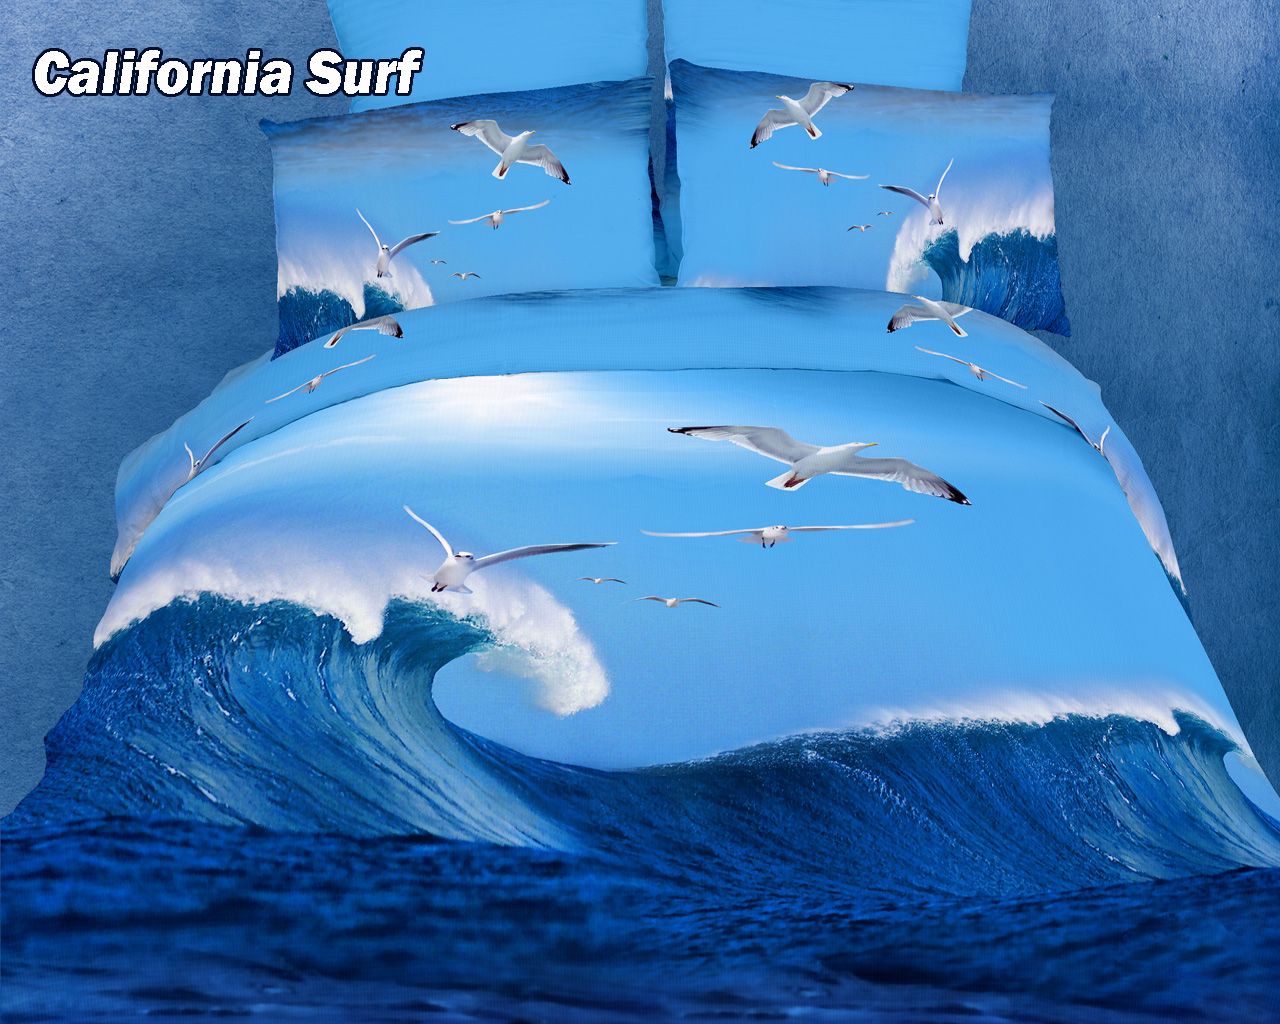 California surf by dolce mela 6 pc s queen size duvet cover set in a